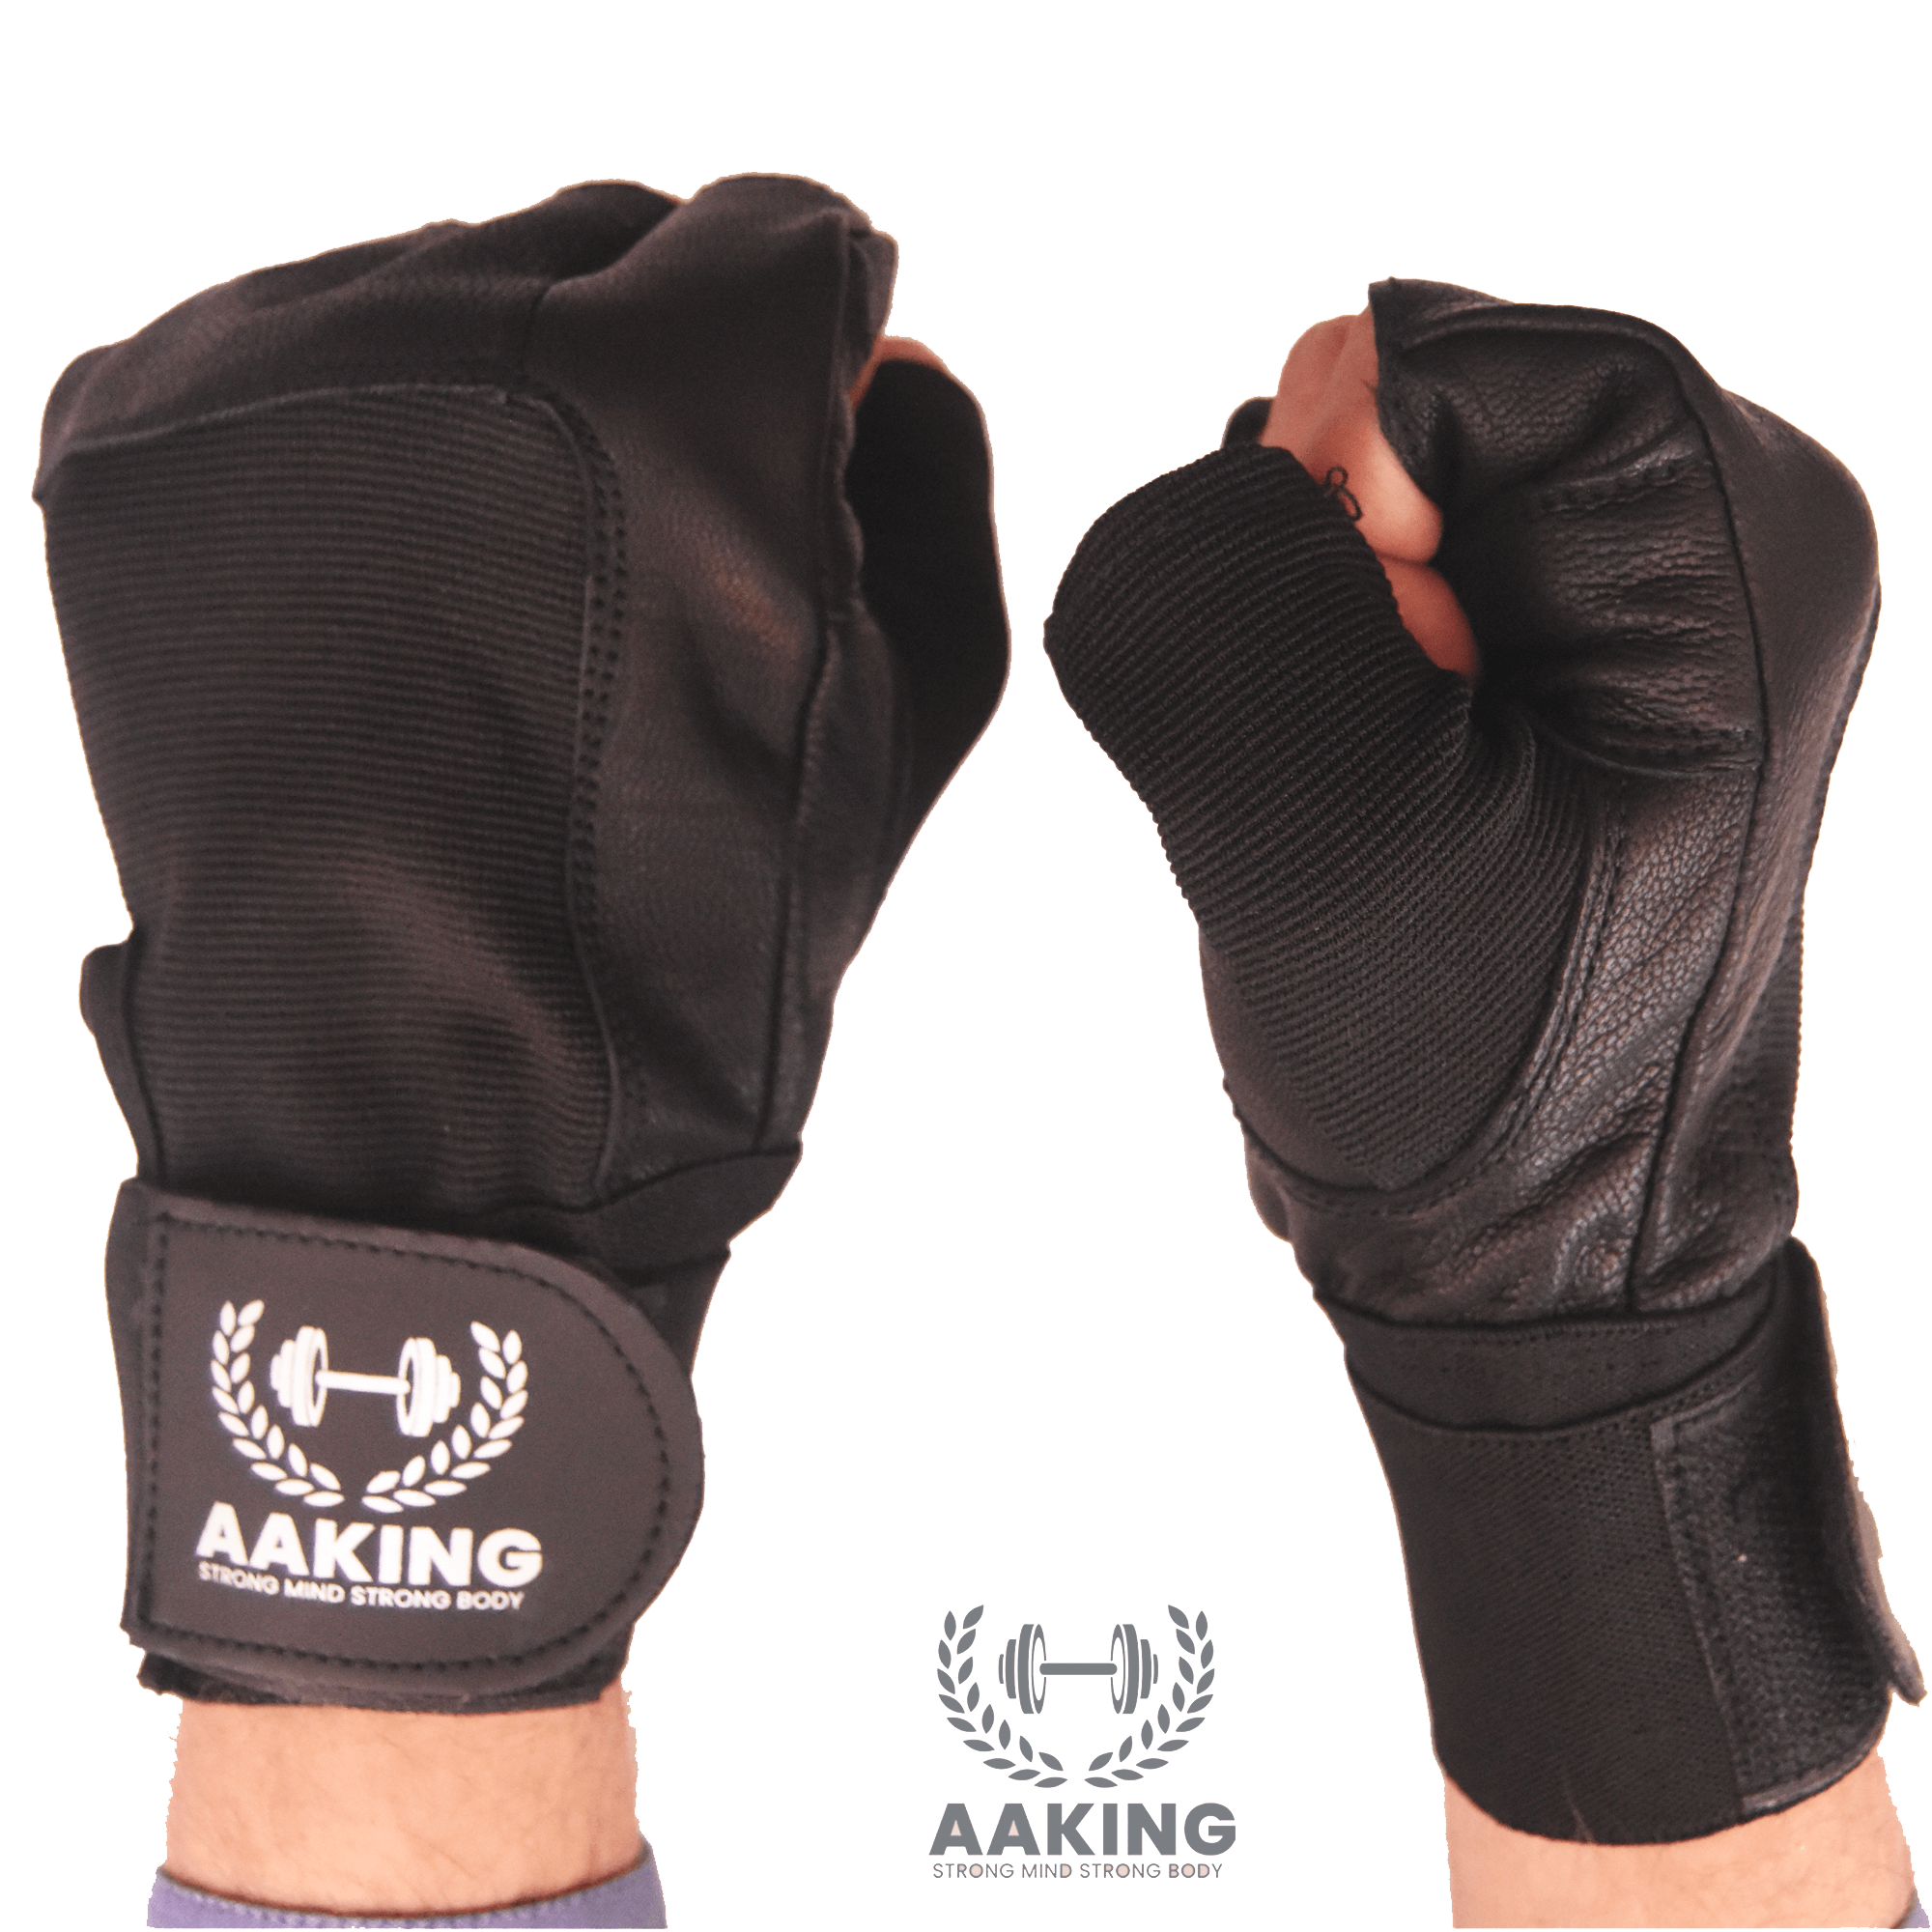 AAking Weightlifting Gym Gloves Fitness for Men Wrist Wrap Workout